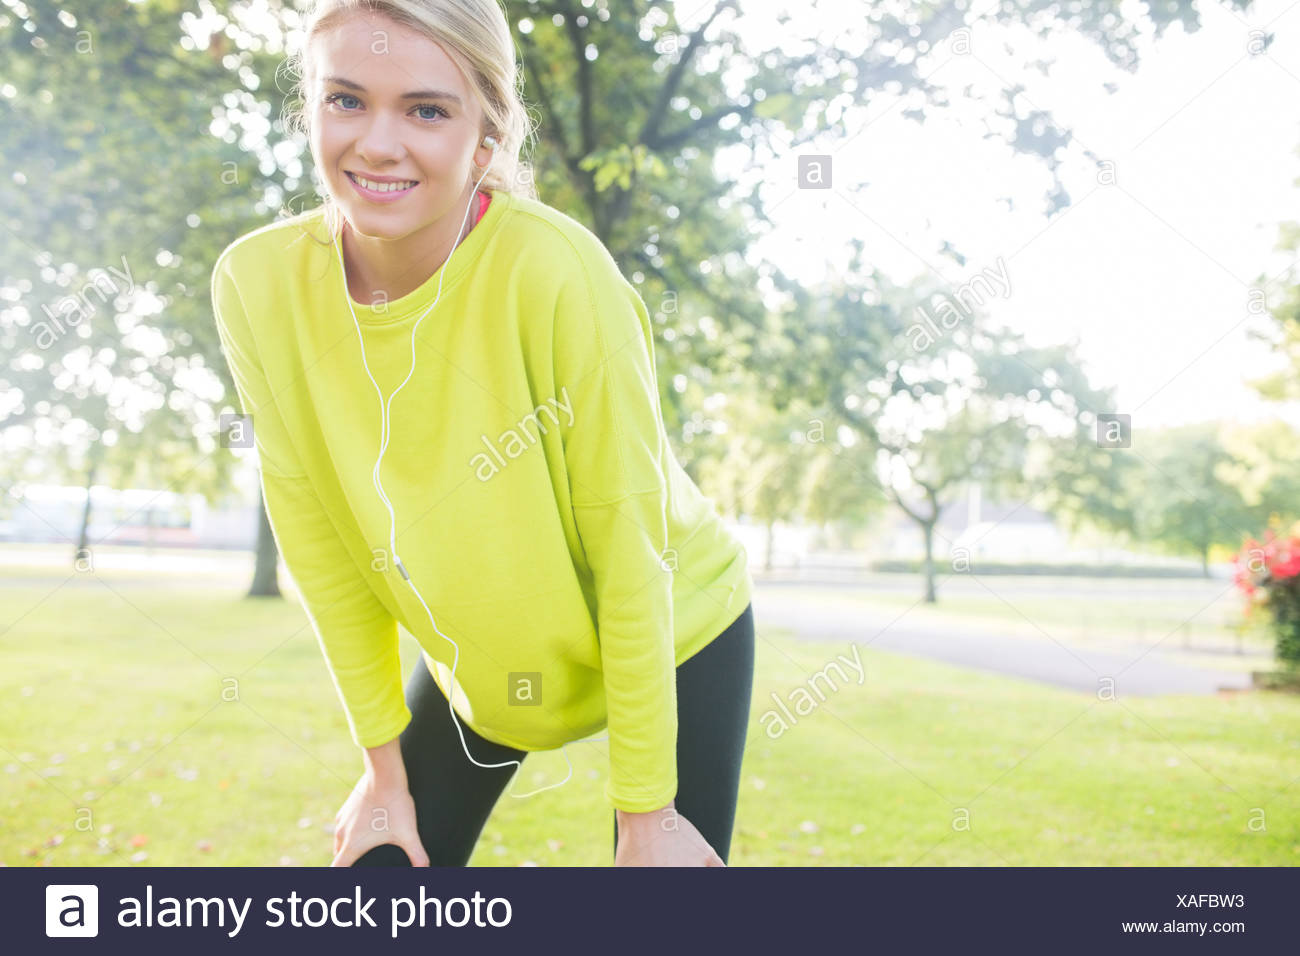 Active cheerful blonde pausing after a run - Stock Image